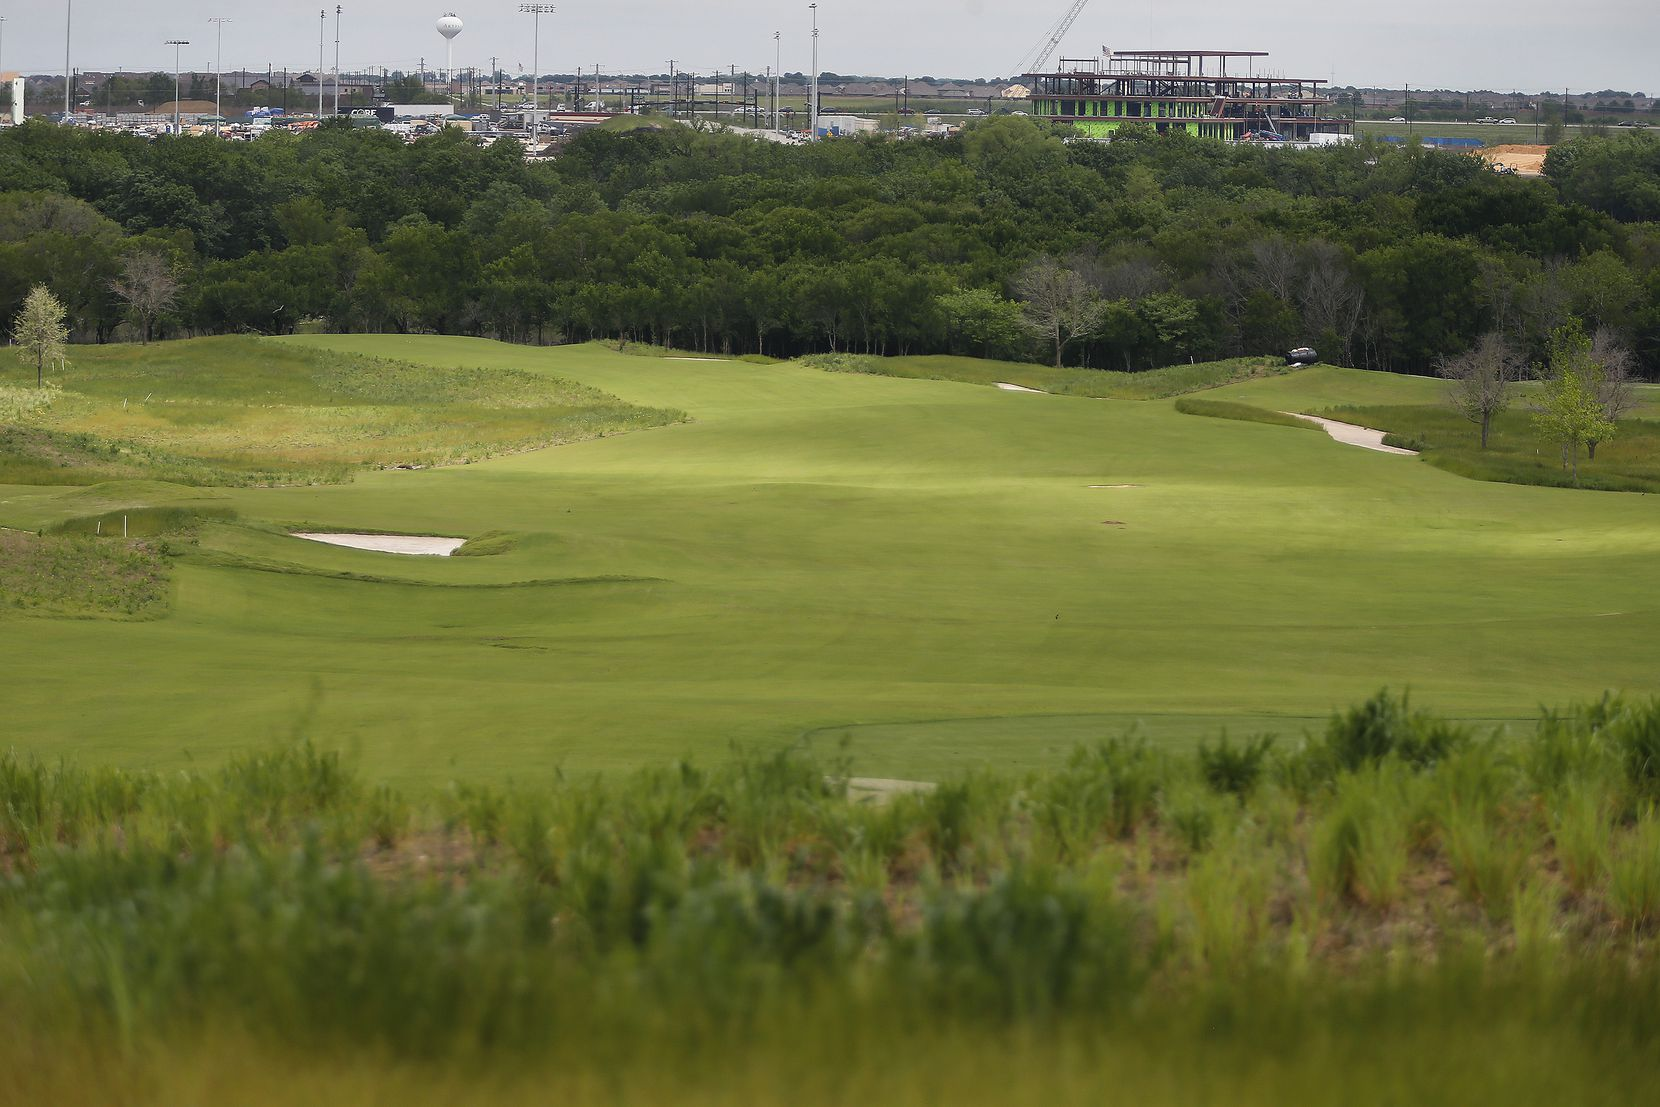 The fiarway on the fifth hole of the west course at the Omni PGA Frisco Resort on PGA Parkway in Frisco on Tuesday, May 4, 2021. (Stewart F. House/Special Contributor)